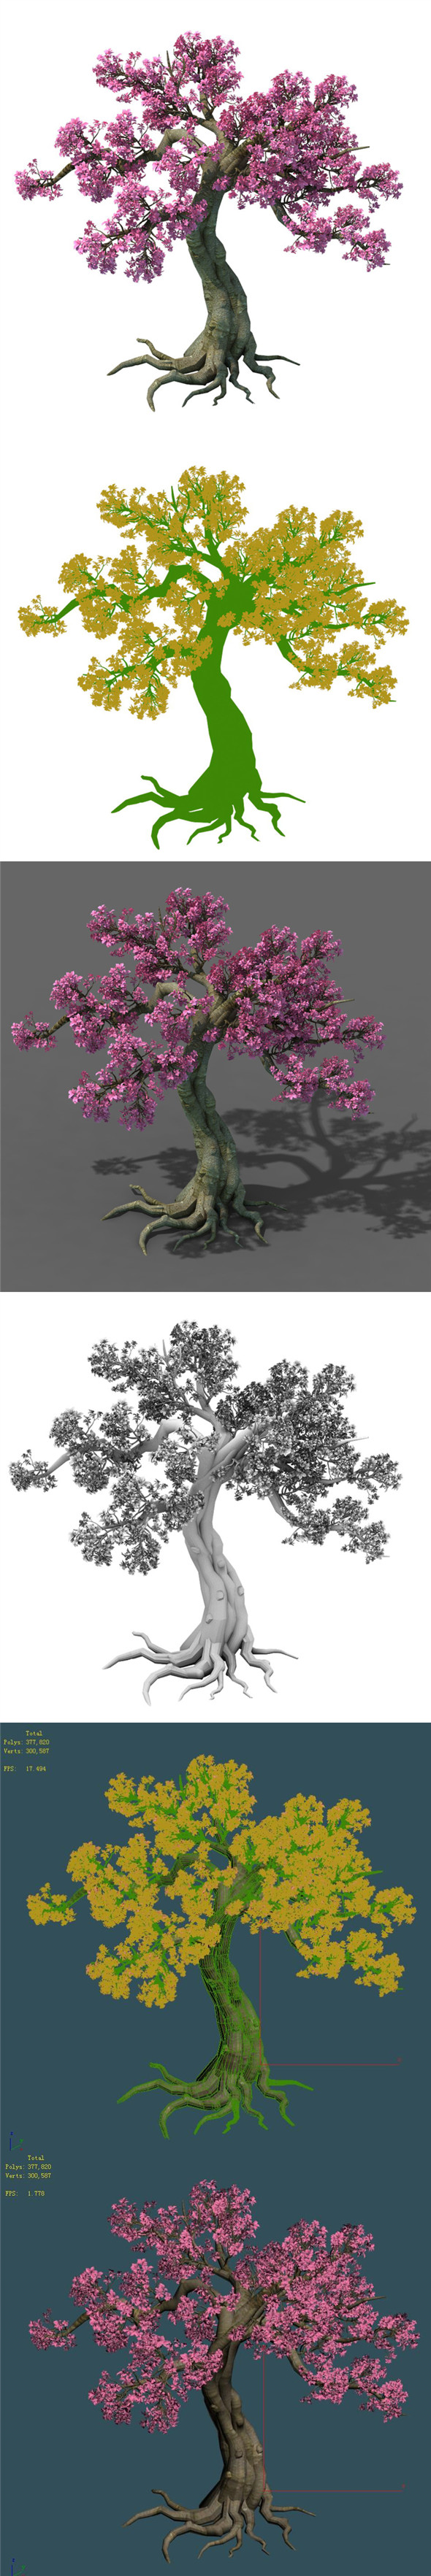 Forest - Peach Blossom Tree 04 - 3DOcean Item for Sale